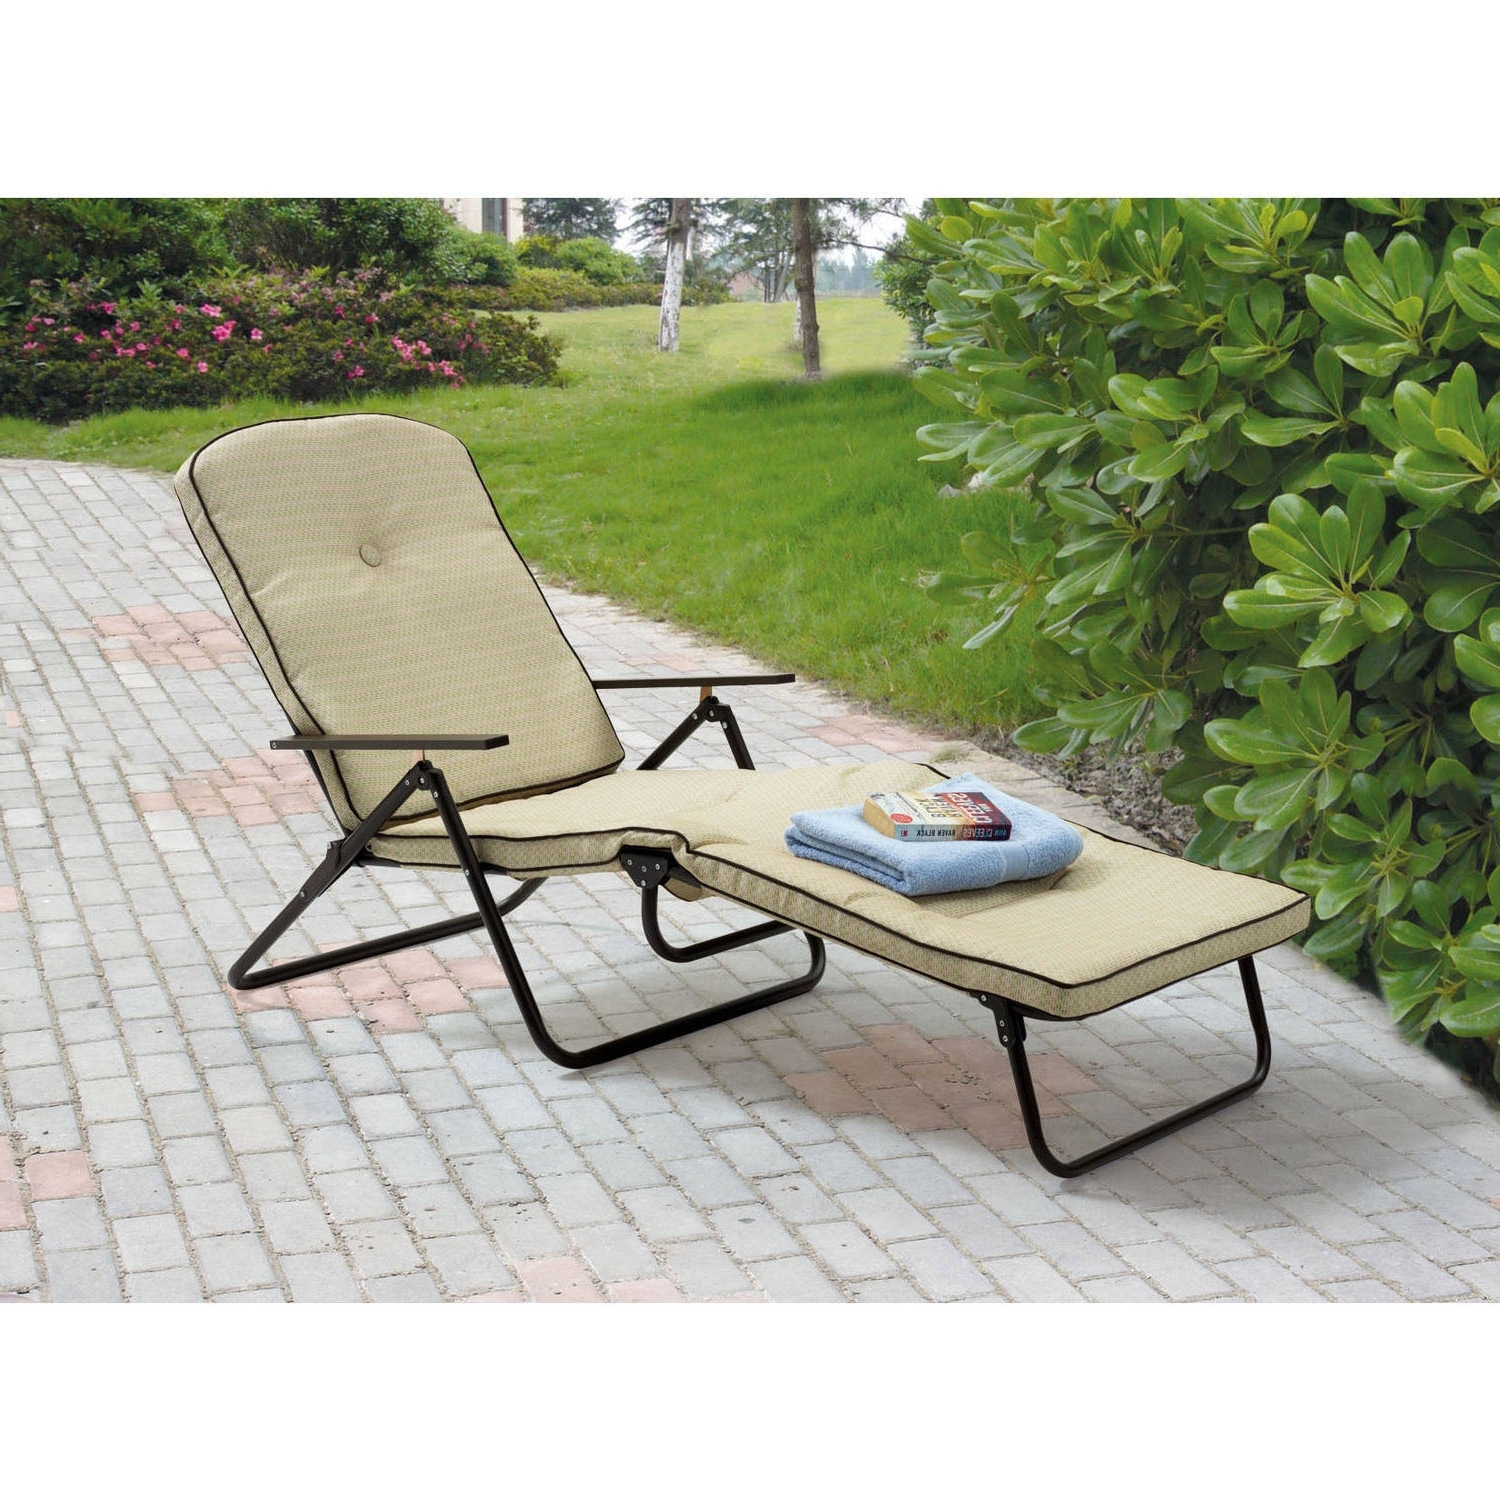 Walmart Chaises Intended For Most Current Mainstays Sand Dune Outdoor Padded Folding Chaise Lounge, Tan (View 8 of 15)